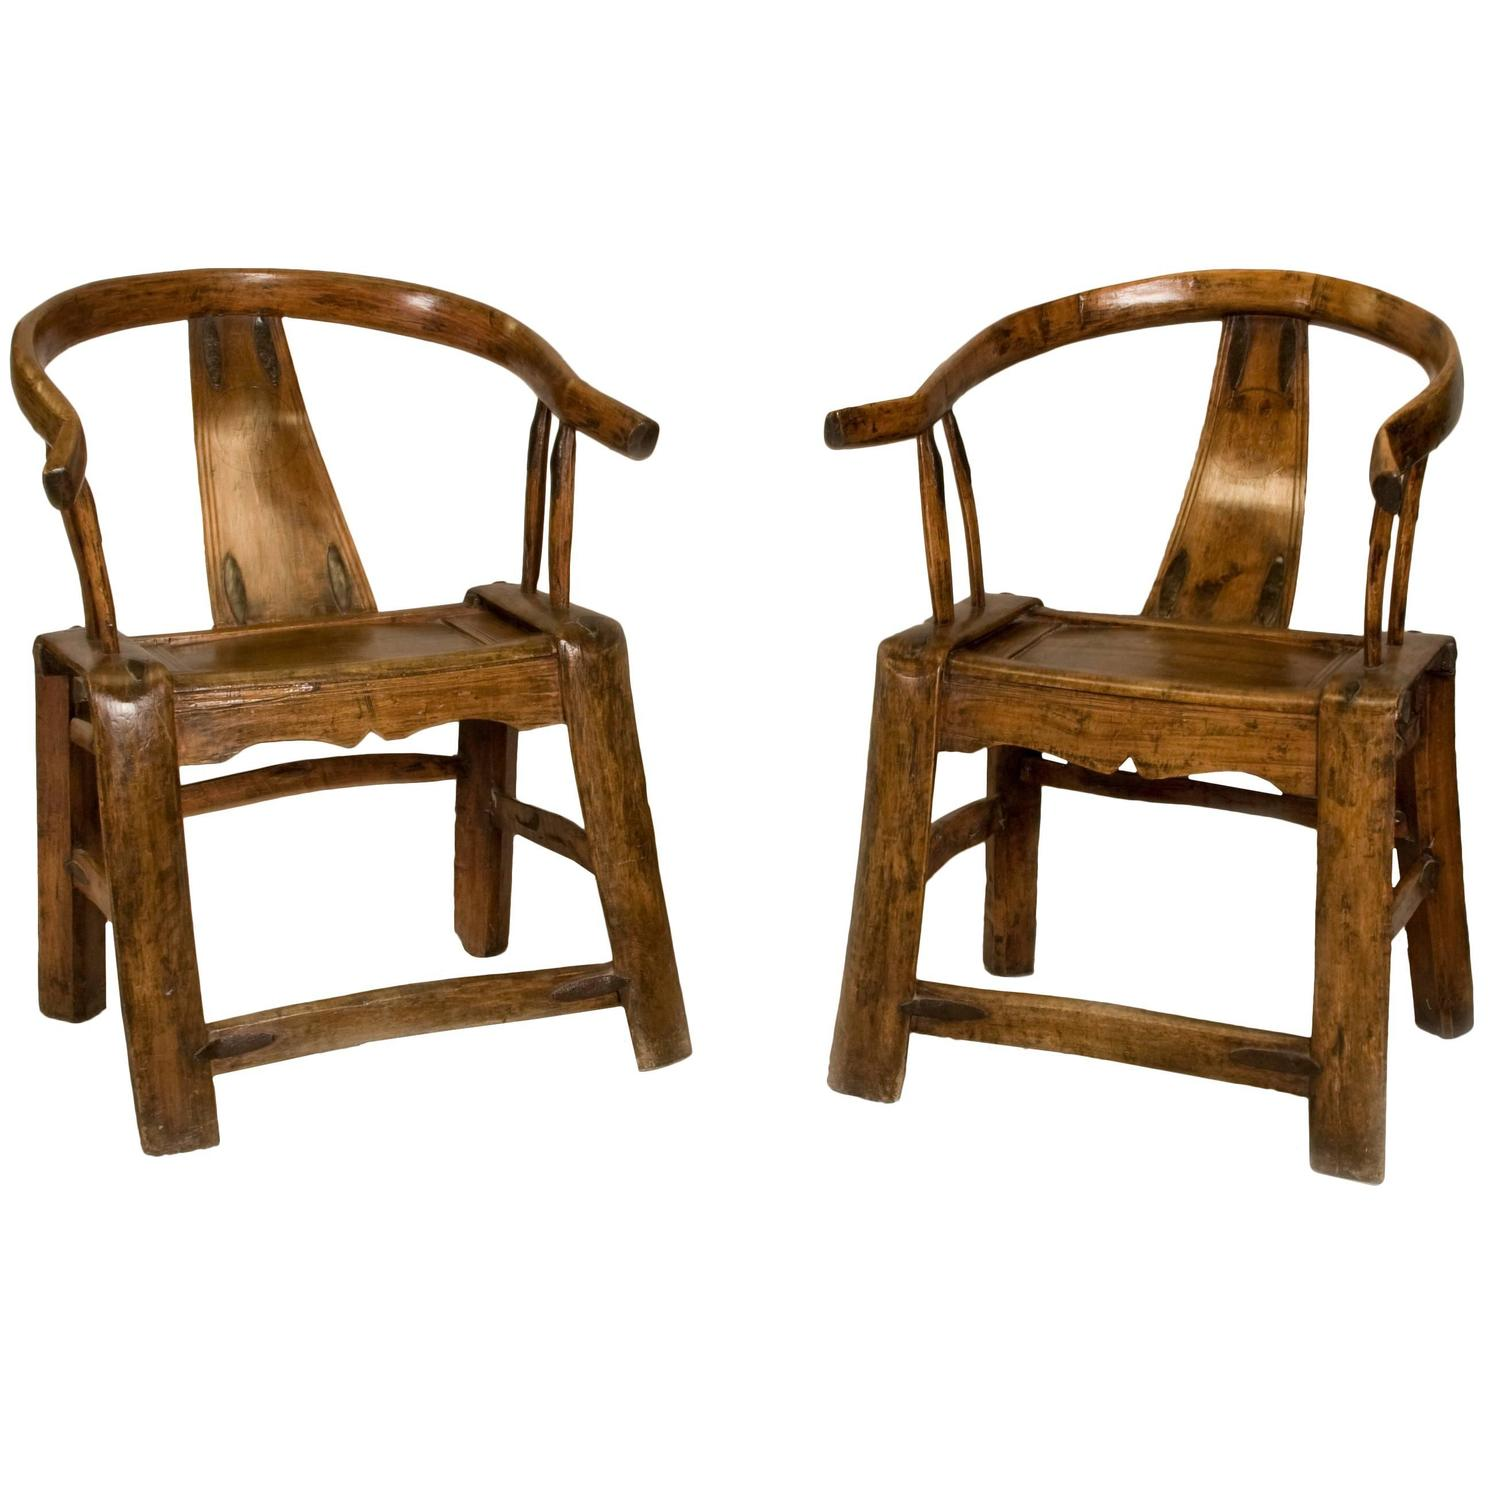 Pair of 19th century chinese yoke back chairs for sale at for Asian chairs for sale